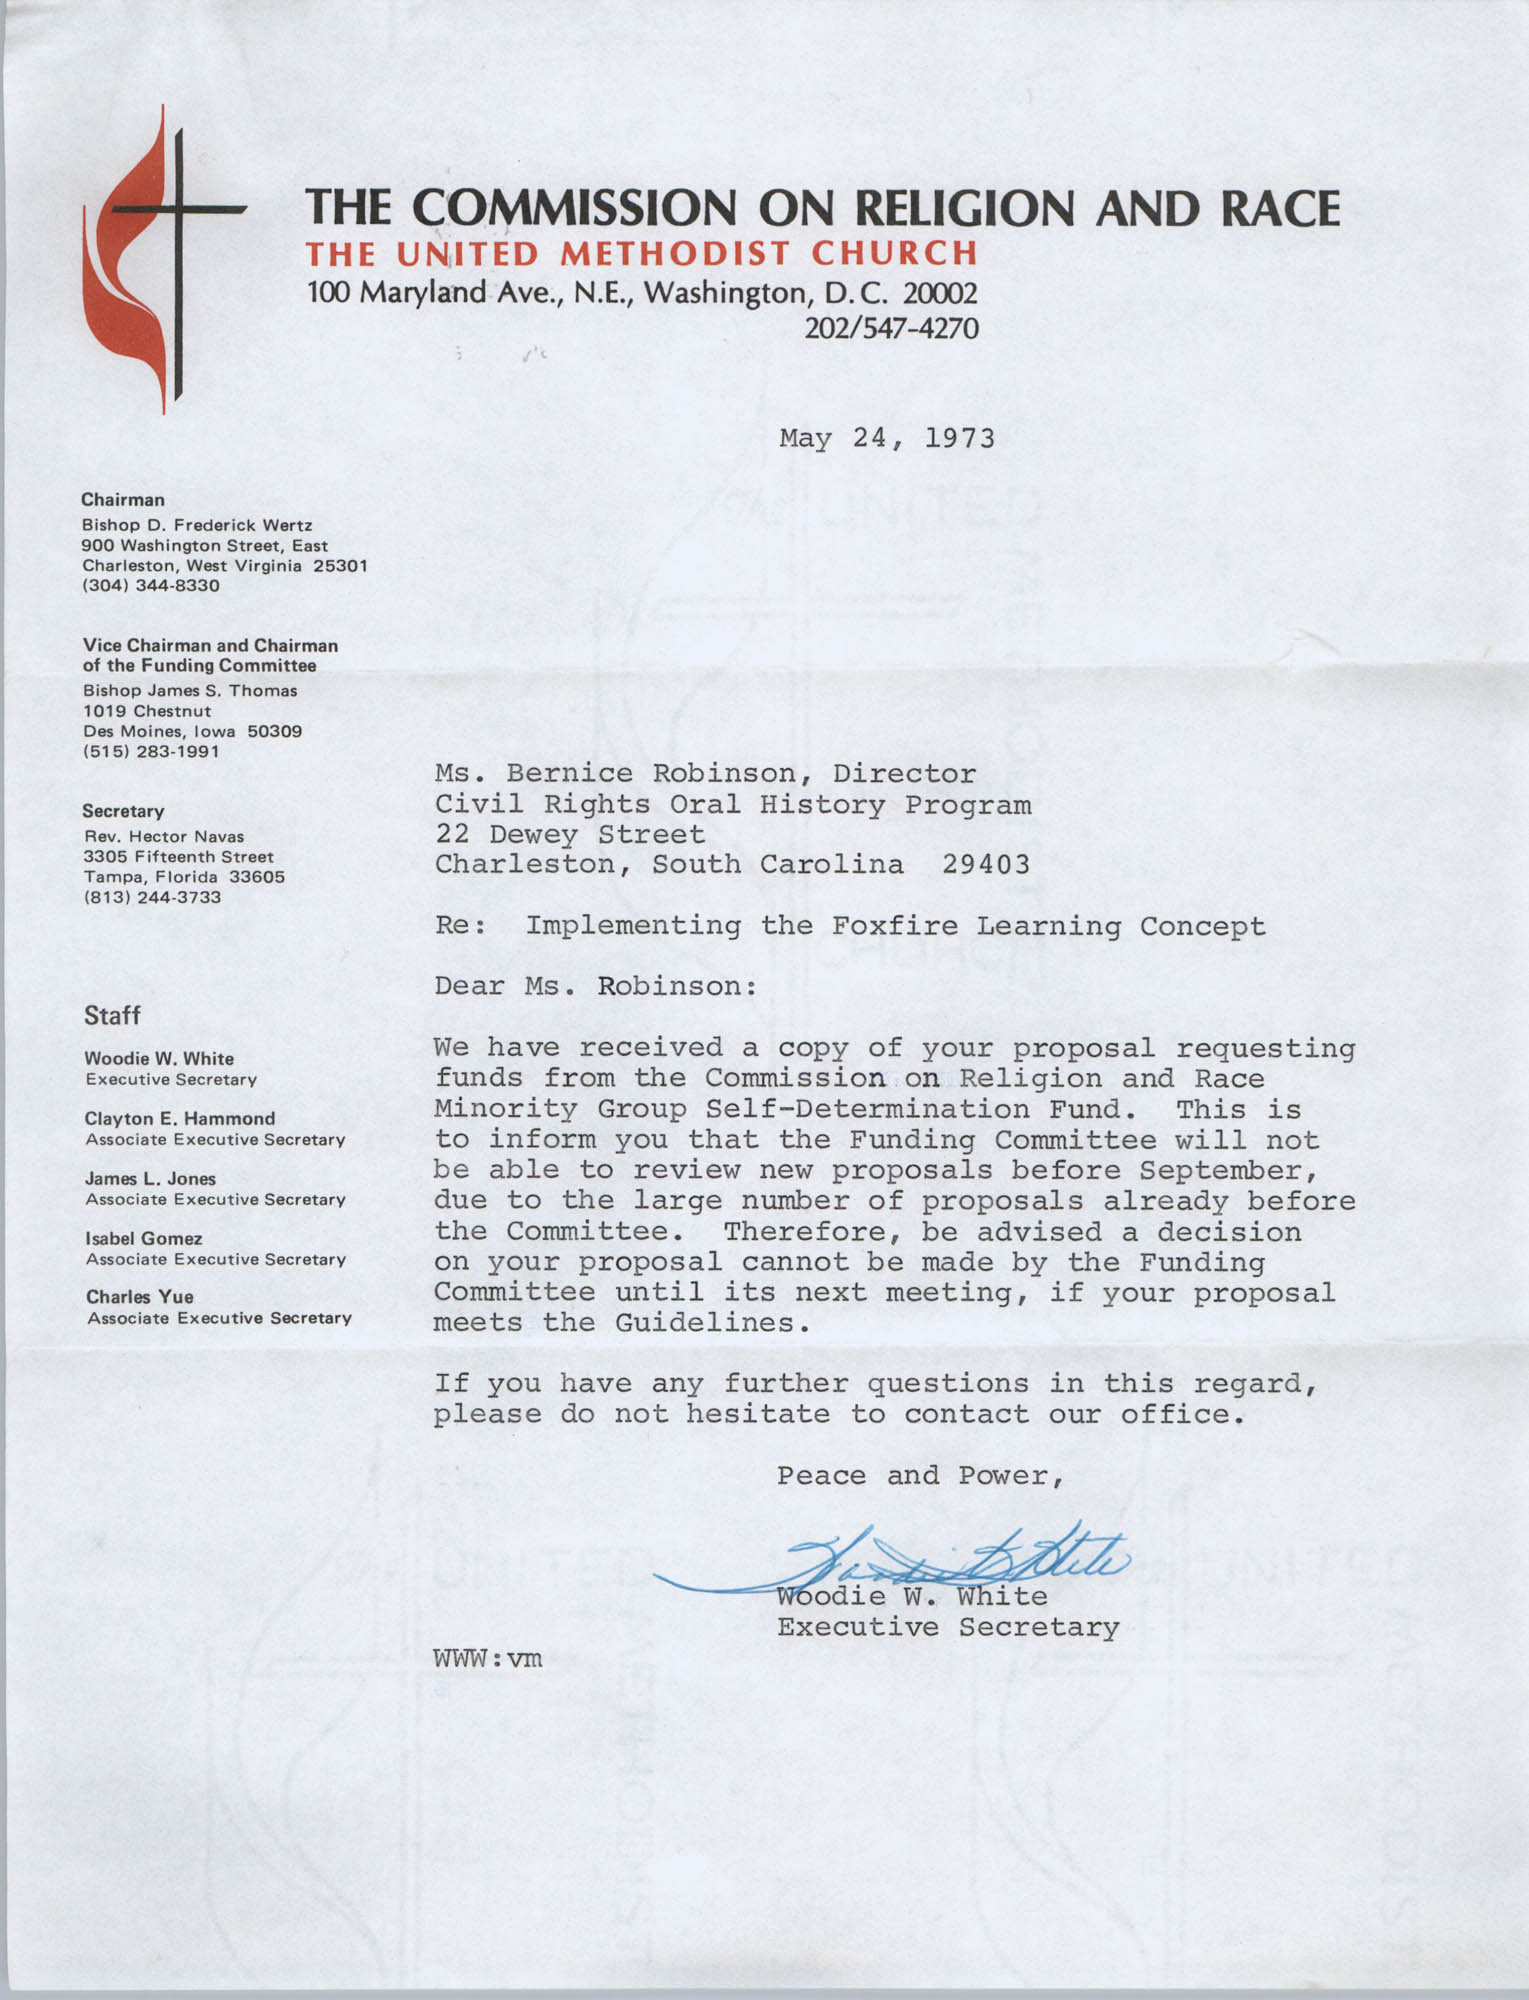 Letter from Woodie White to Bernice Robinson, May 24, 1973